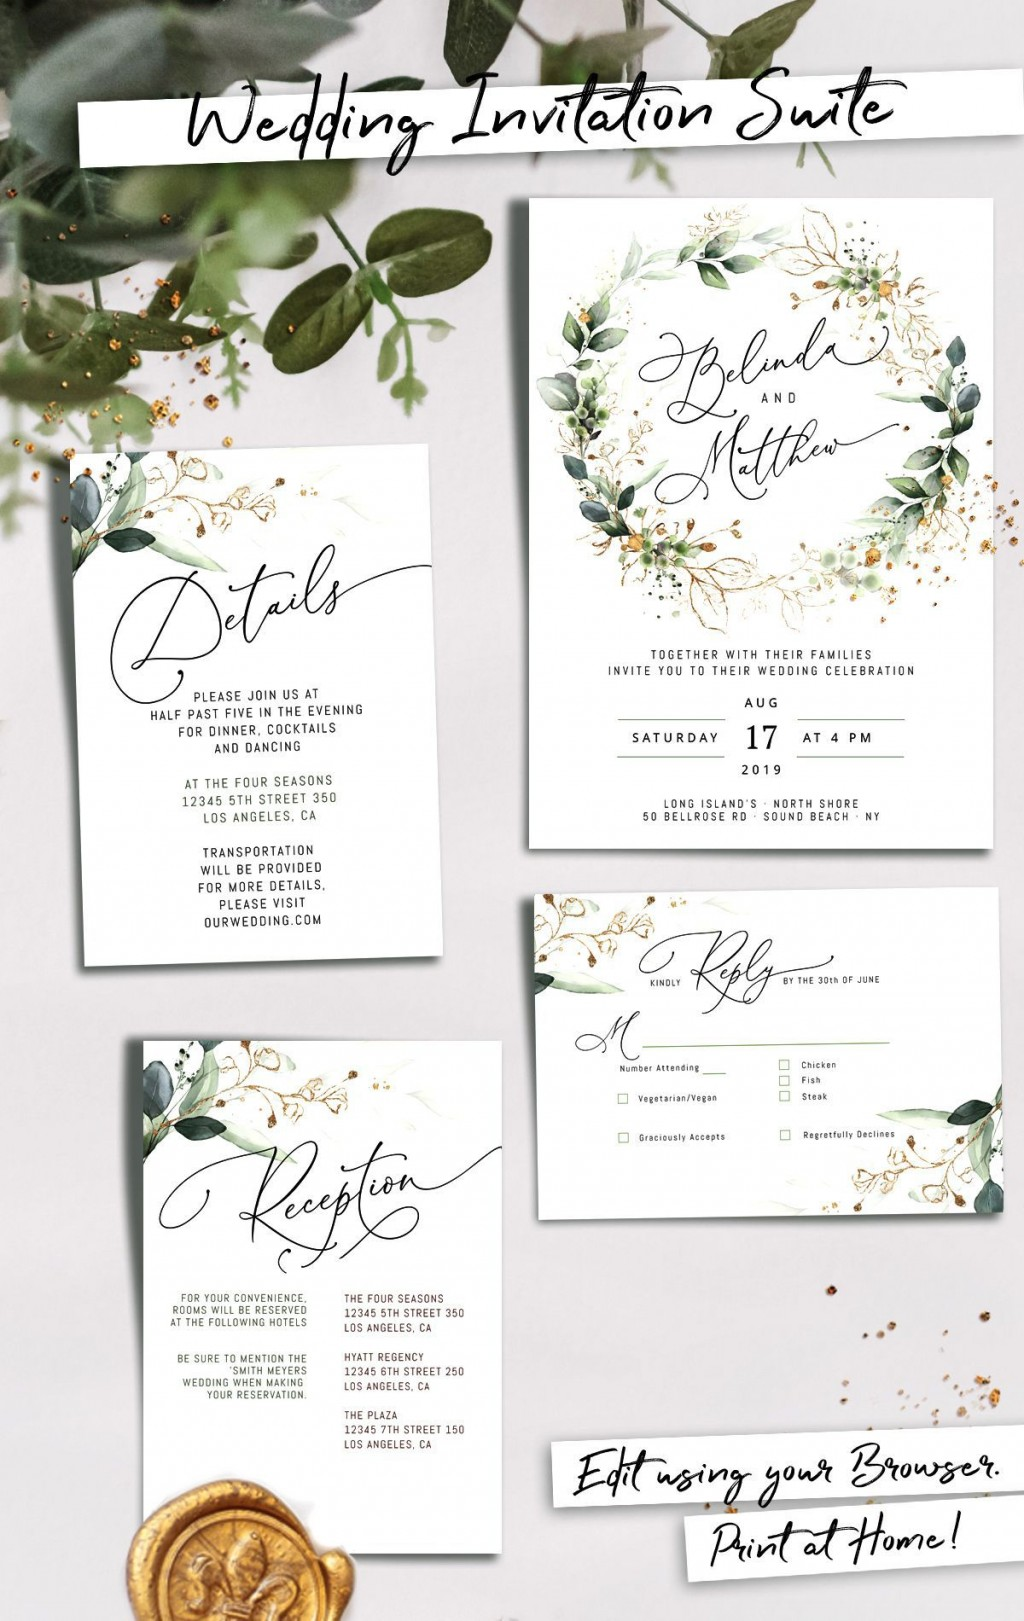 005 Amazing Editable Wedding Invitation Template High Def  Templates Tamil Card Free Download Psd OnlineLarge